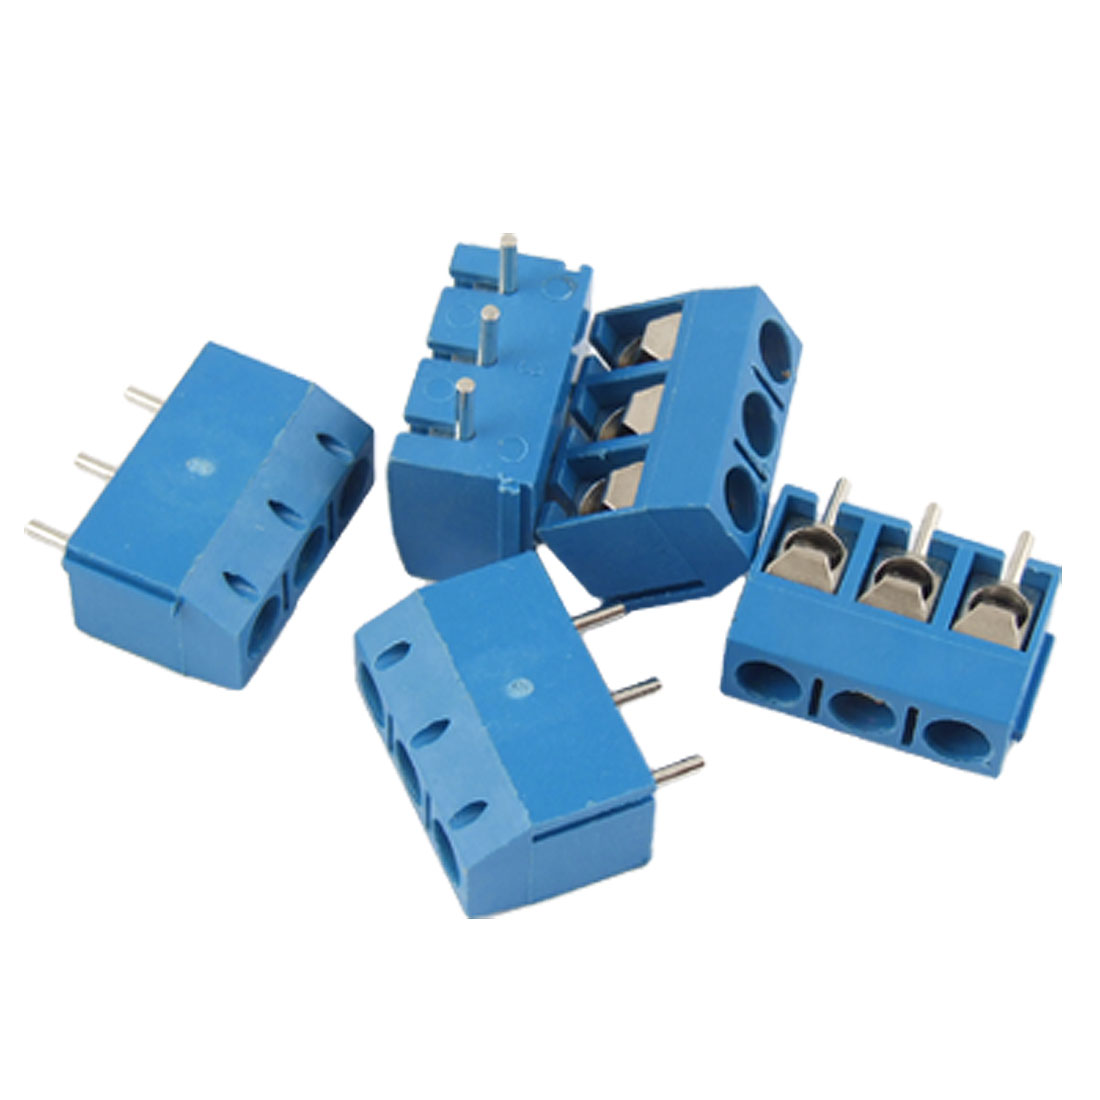 5 Pcs 3 Position PCB Mount Terminal Block Connector AC 300V 16A